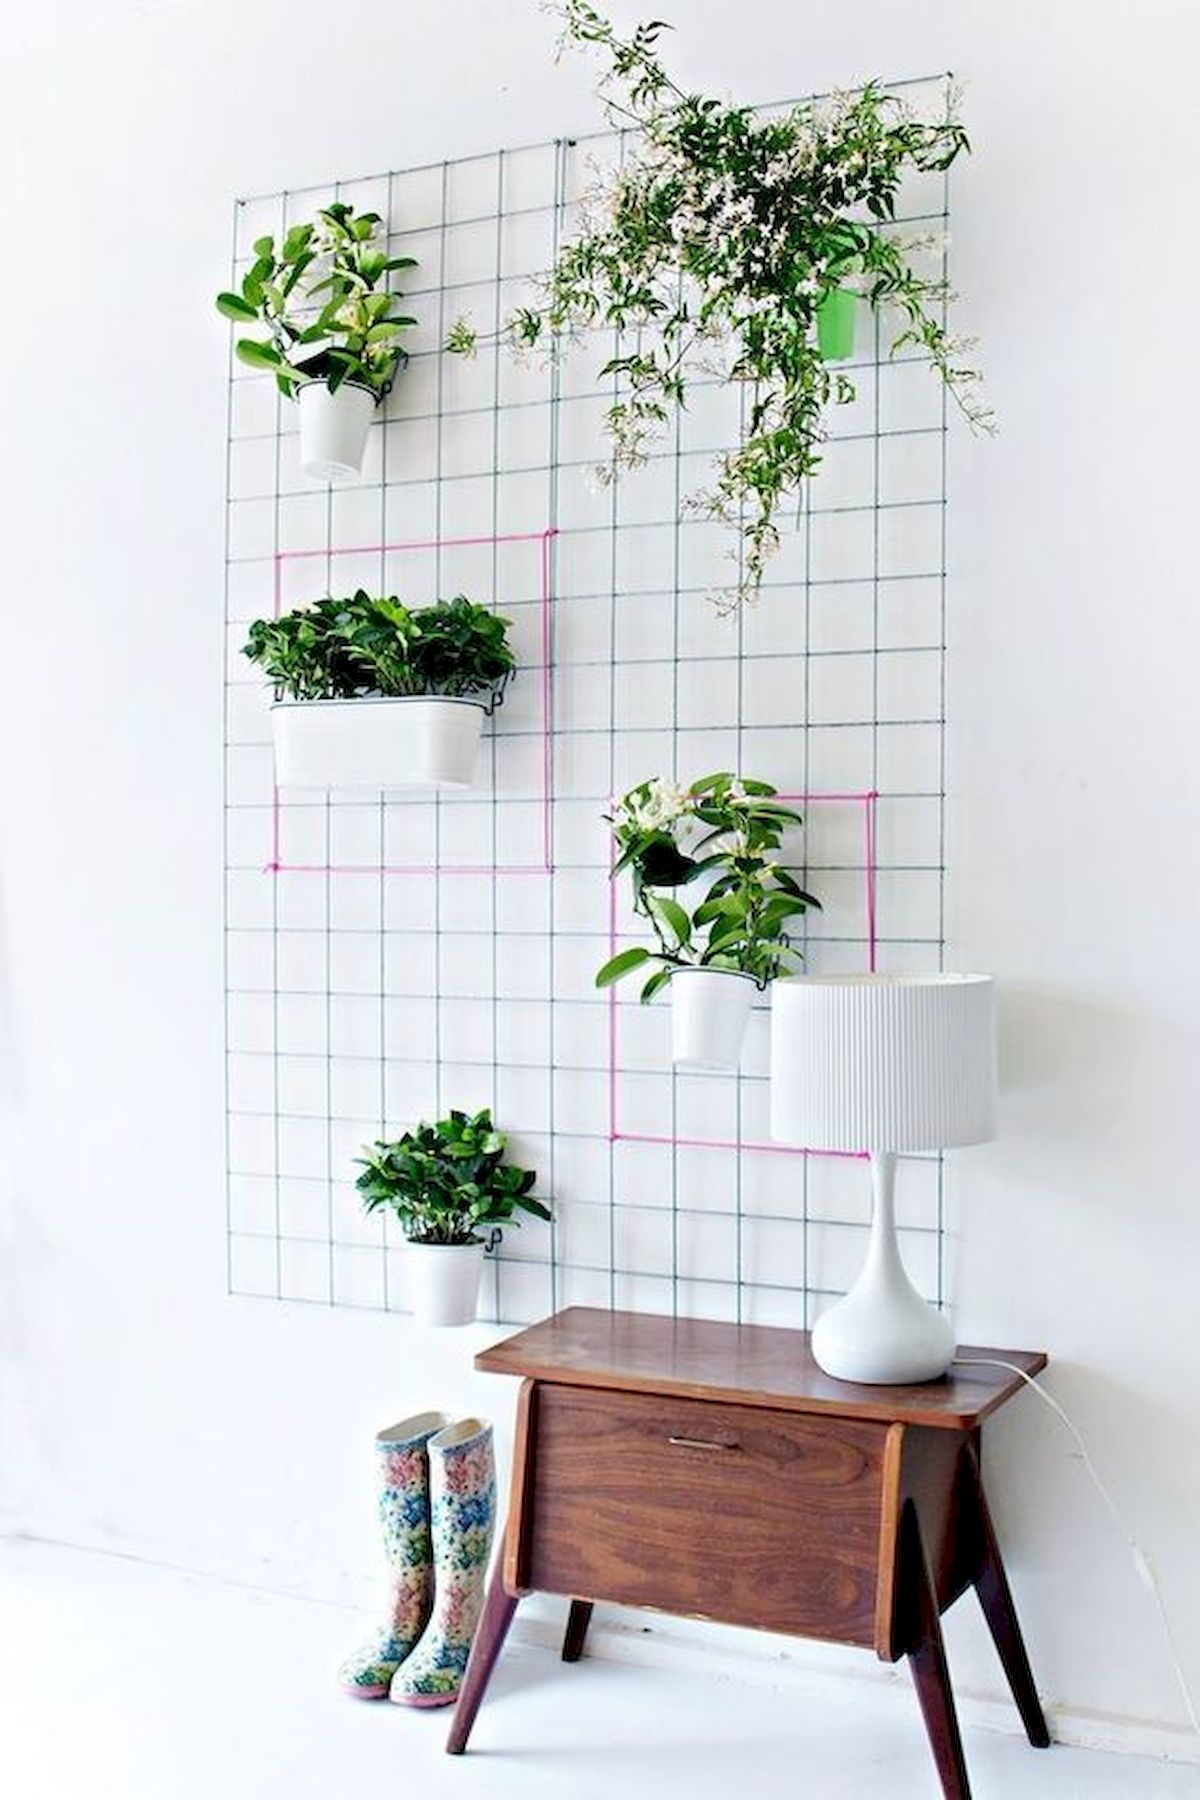 44 Fantastic Vertical Garden Ideas To Make Your Home Beautiful (21)